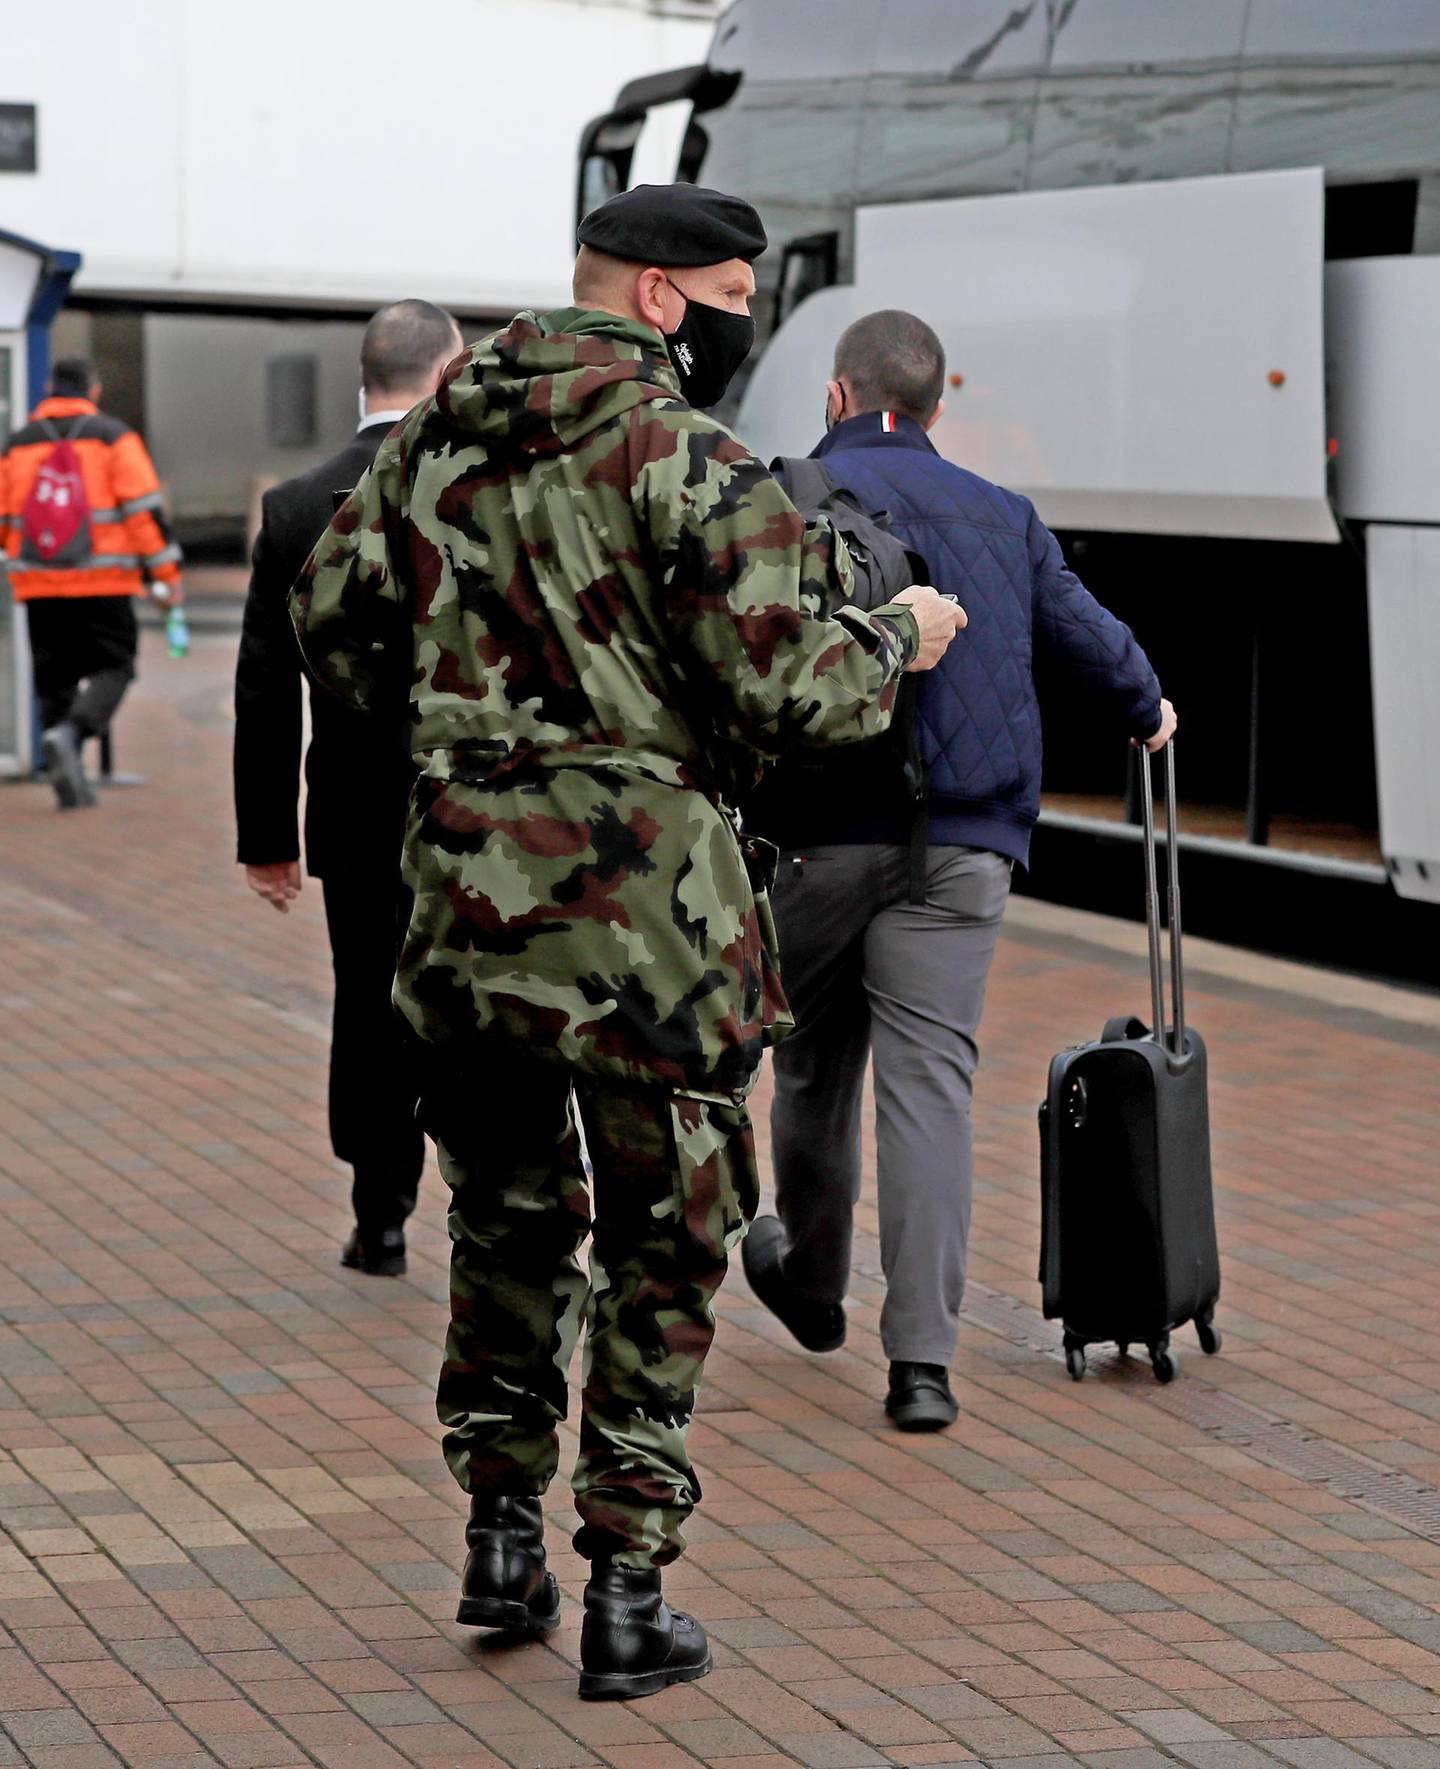 DUBLIN, IRELAND - MARCH 29: A passenger is escorted to a bus to be taken to the Crowne Plaza hotel for quarantine on March 29, 2021 in Dublin, Ireland. Last week, Ireland started requiring travelers from 33 high-risk countries to be shuttled to a mandatory 12-day hotel quarantine. Over the weekend, three quarantined travelers absconded from their hotel, forcing authorities to track them down. (Photo by Donall Farmer/Getty Images)